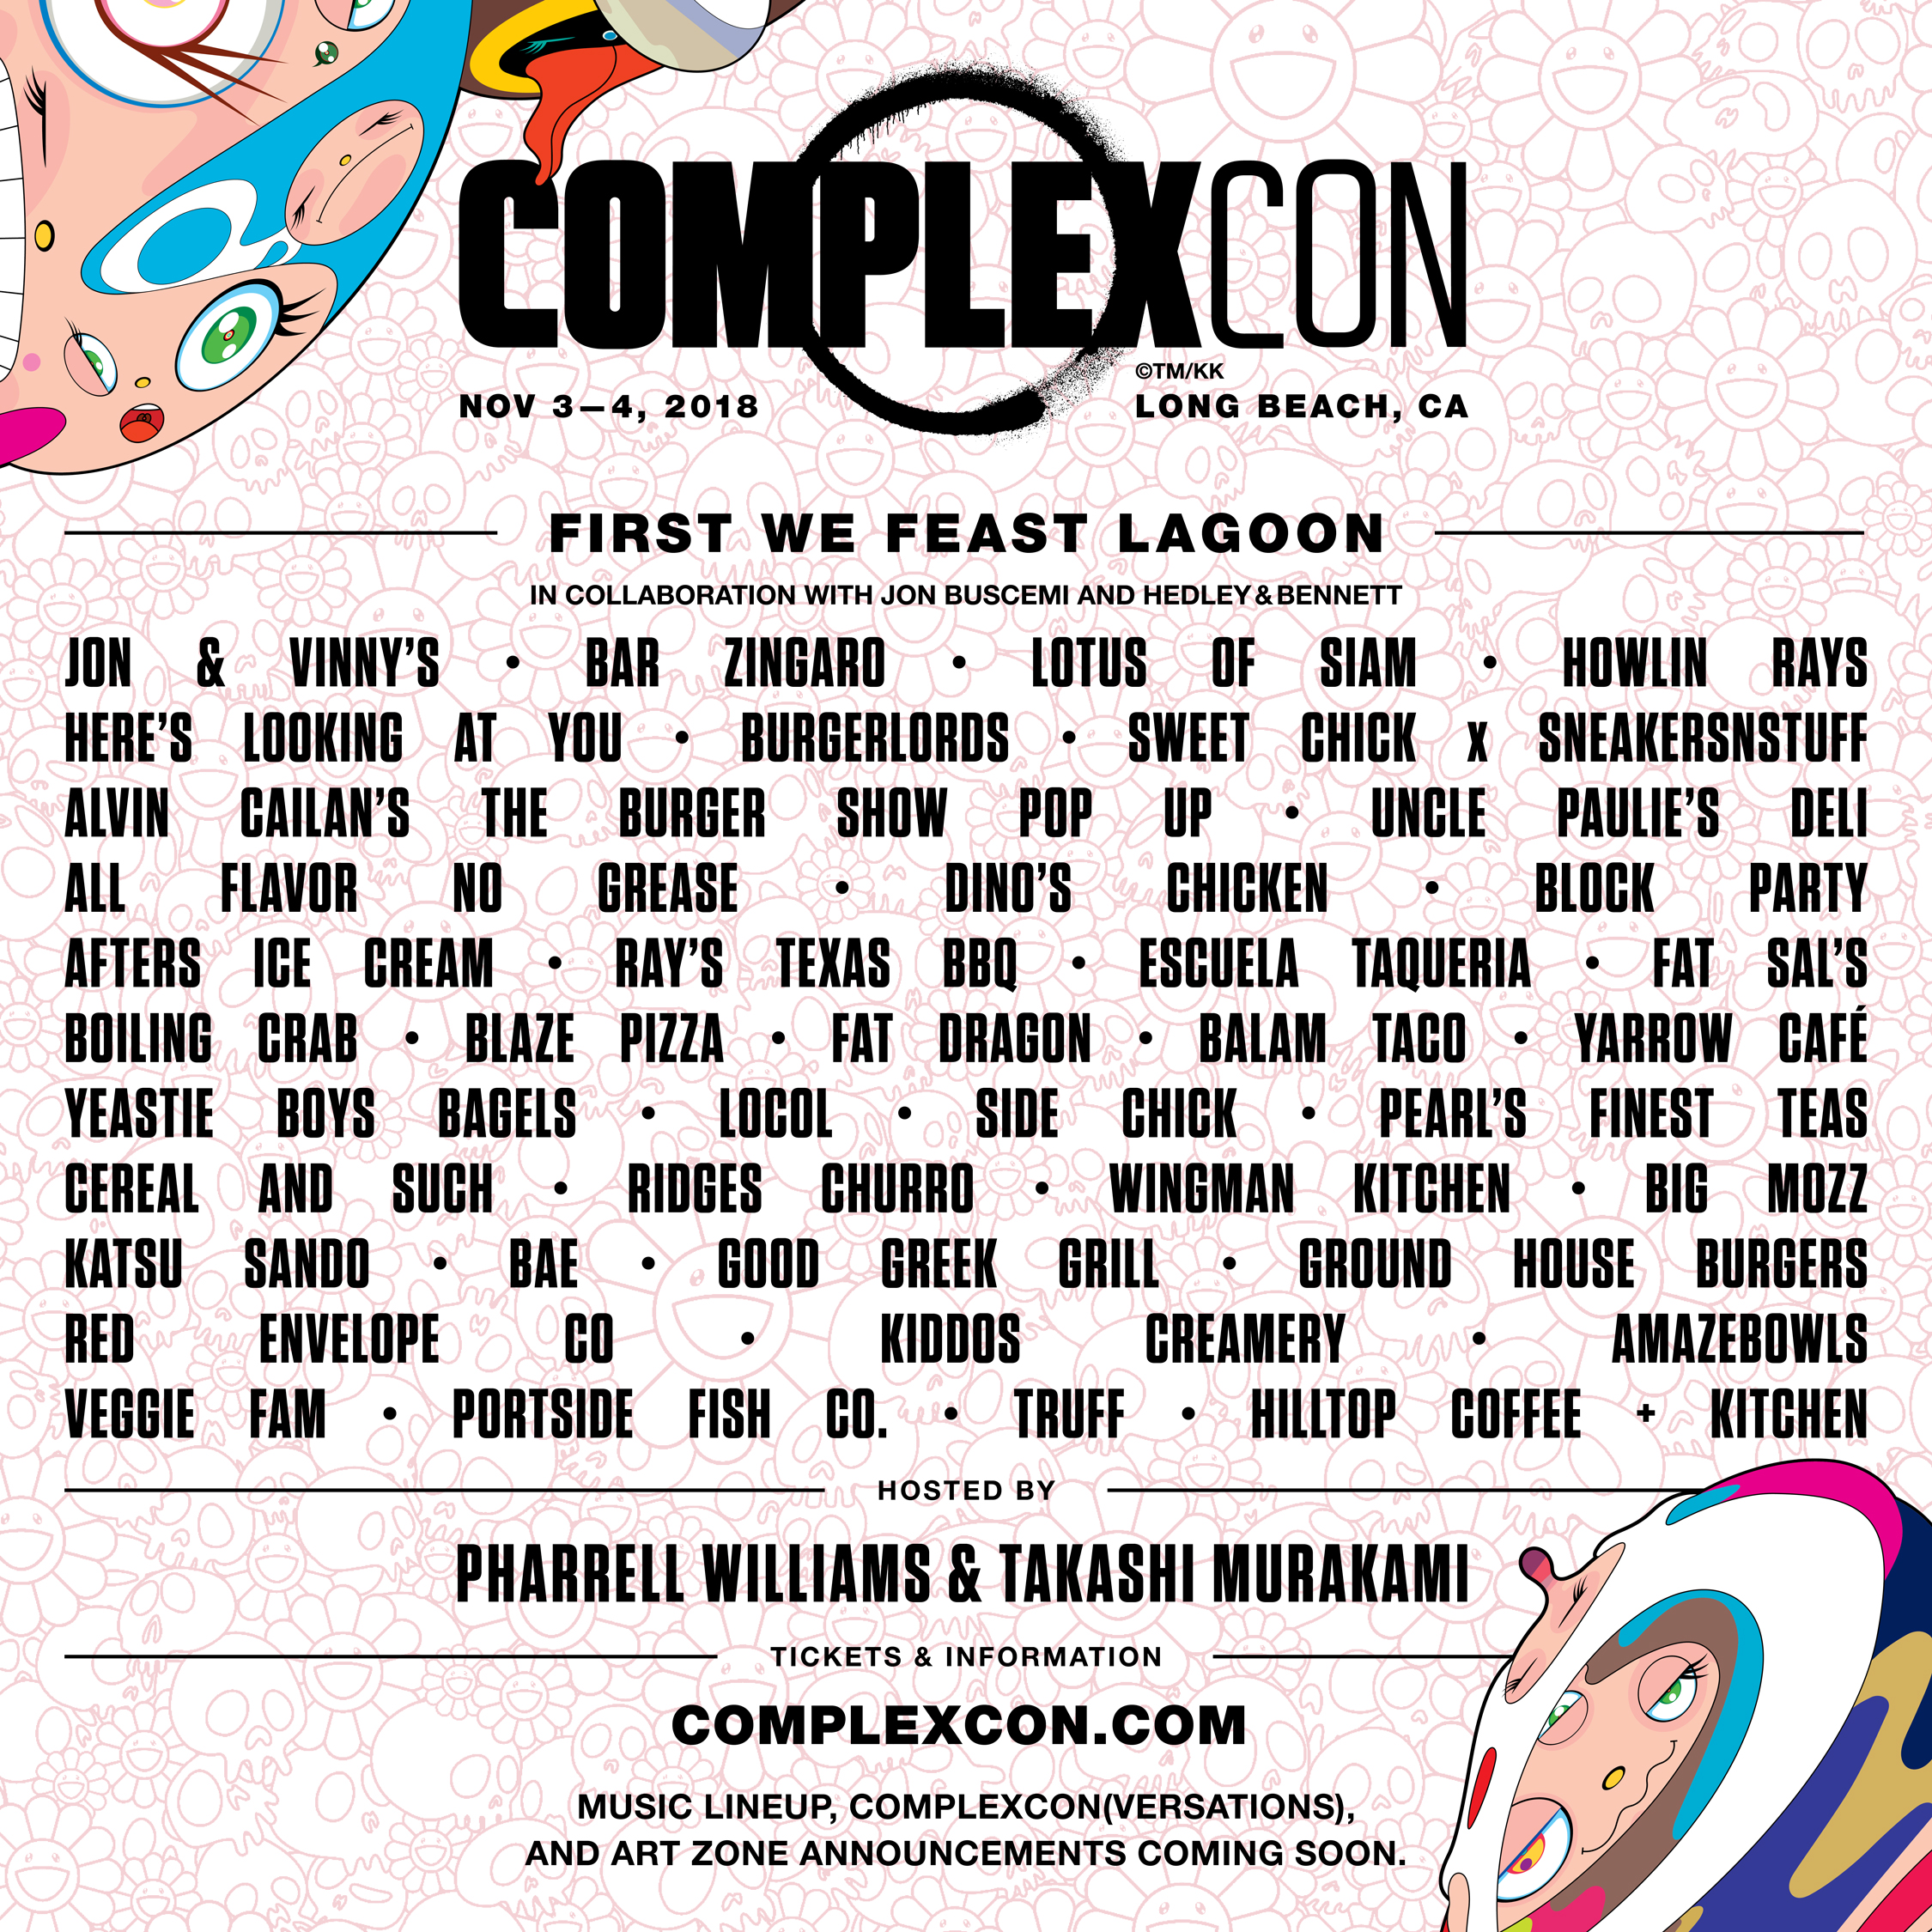 The First We Feast's culinary lineup at ComplexCon revealed